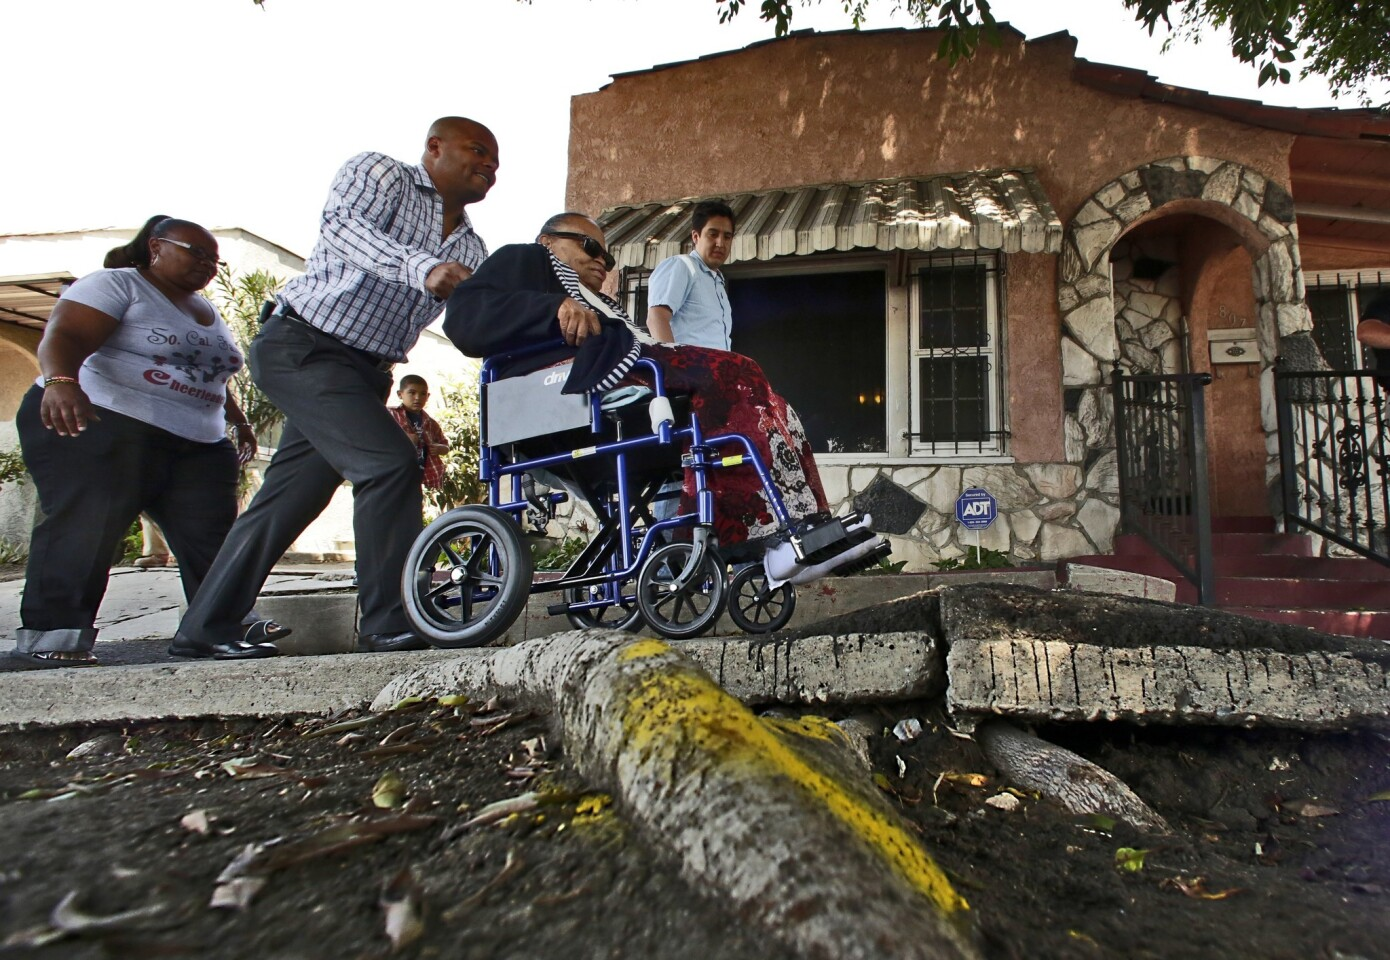 Bernard Parks Jr., chief of staff of Councilman Bernard Parks, pushes Helen Young, 80, in a wheelchair over a broken sidewalk in front her home on West Century Boulevard in Los Angeles, where Councilman Parks and the L.A. Neighborhood Initiative marked the start of several sidewalk repair projects.